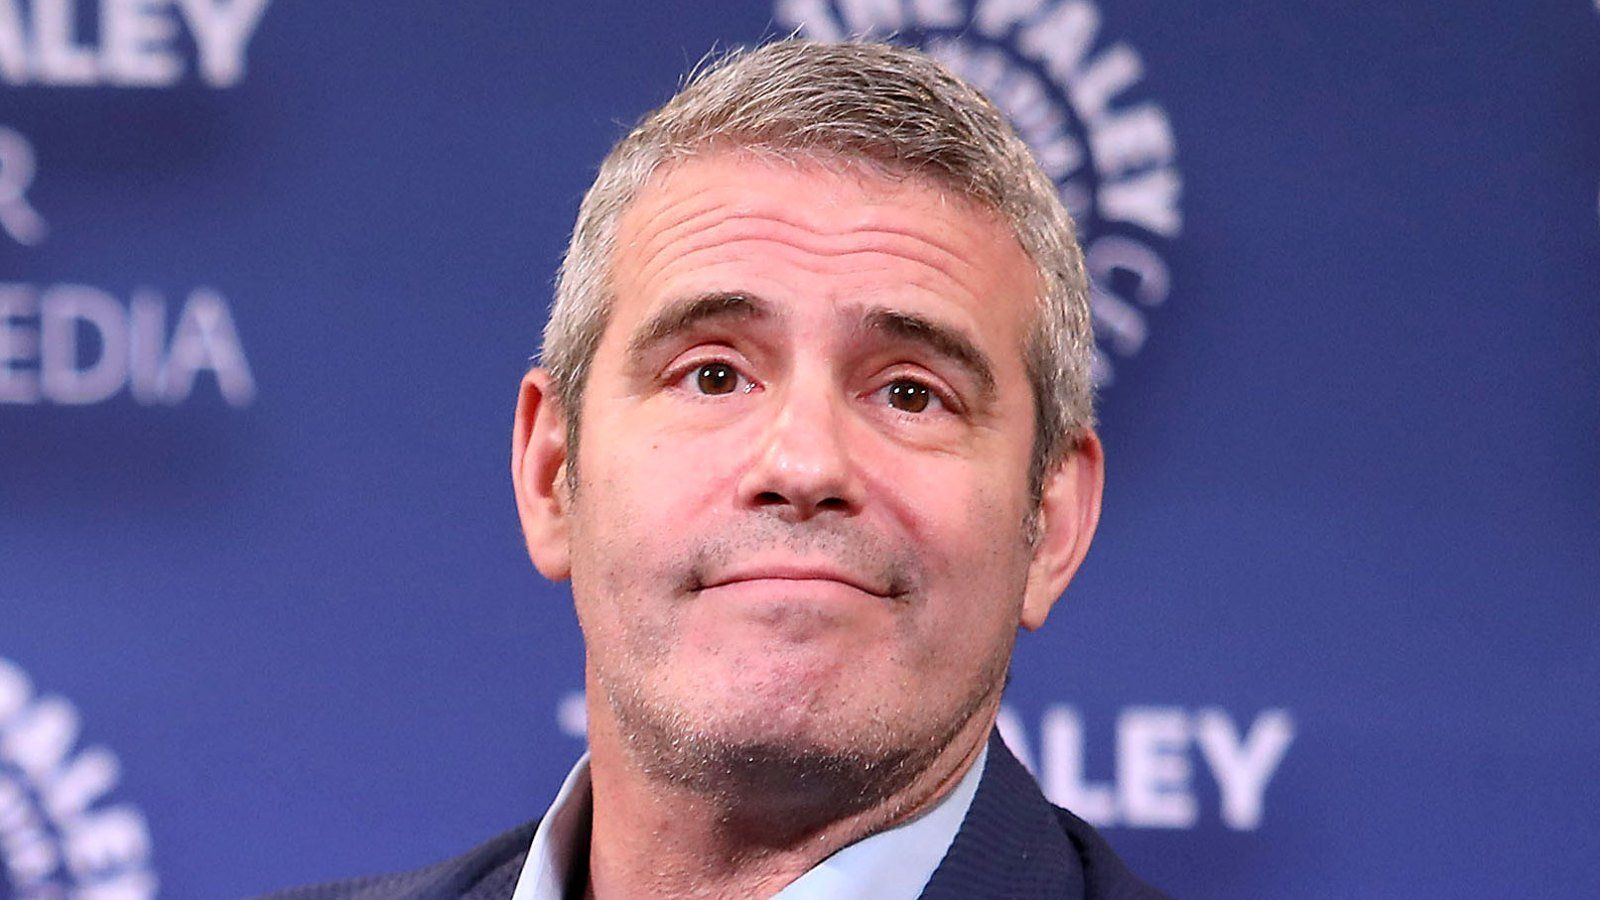 Andy Cohen Confirms That The RHOA Reunion Is Postponed Due To The Coronavirus Outbreak #AndyCohen, #KenyaMoore, #RealHousewives, #Rhoa celebrityinsider.org #Entertainment #celebrityinsider #celebritynews #celebrities #celebrity